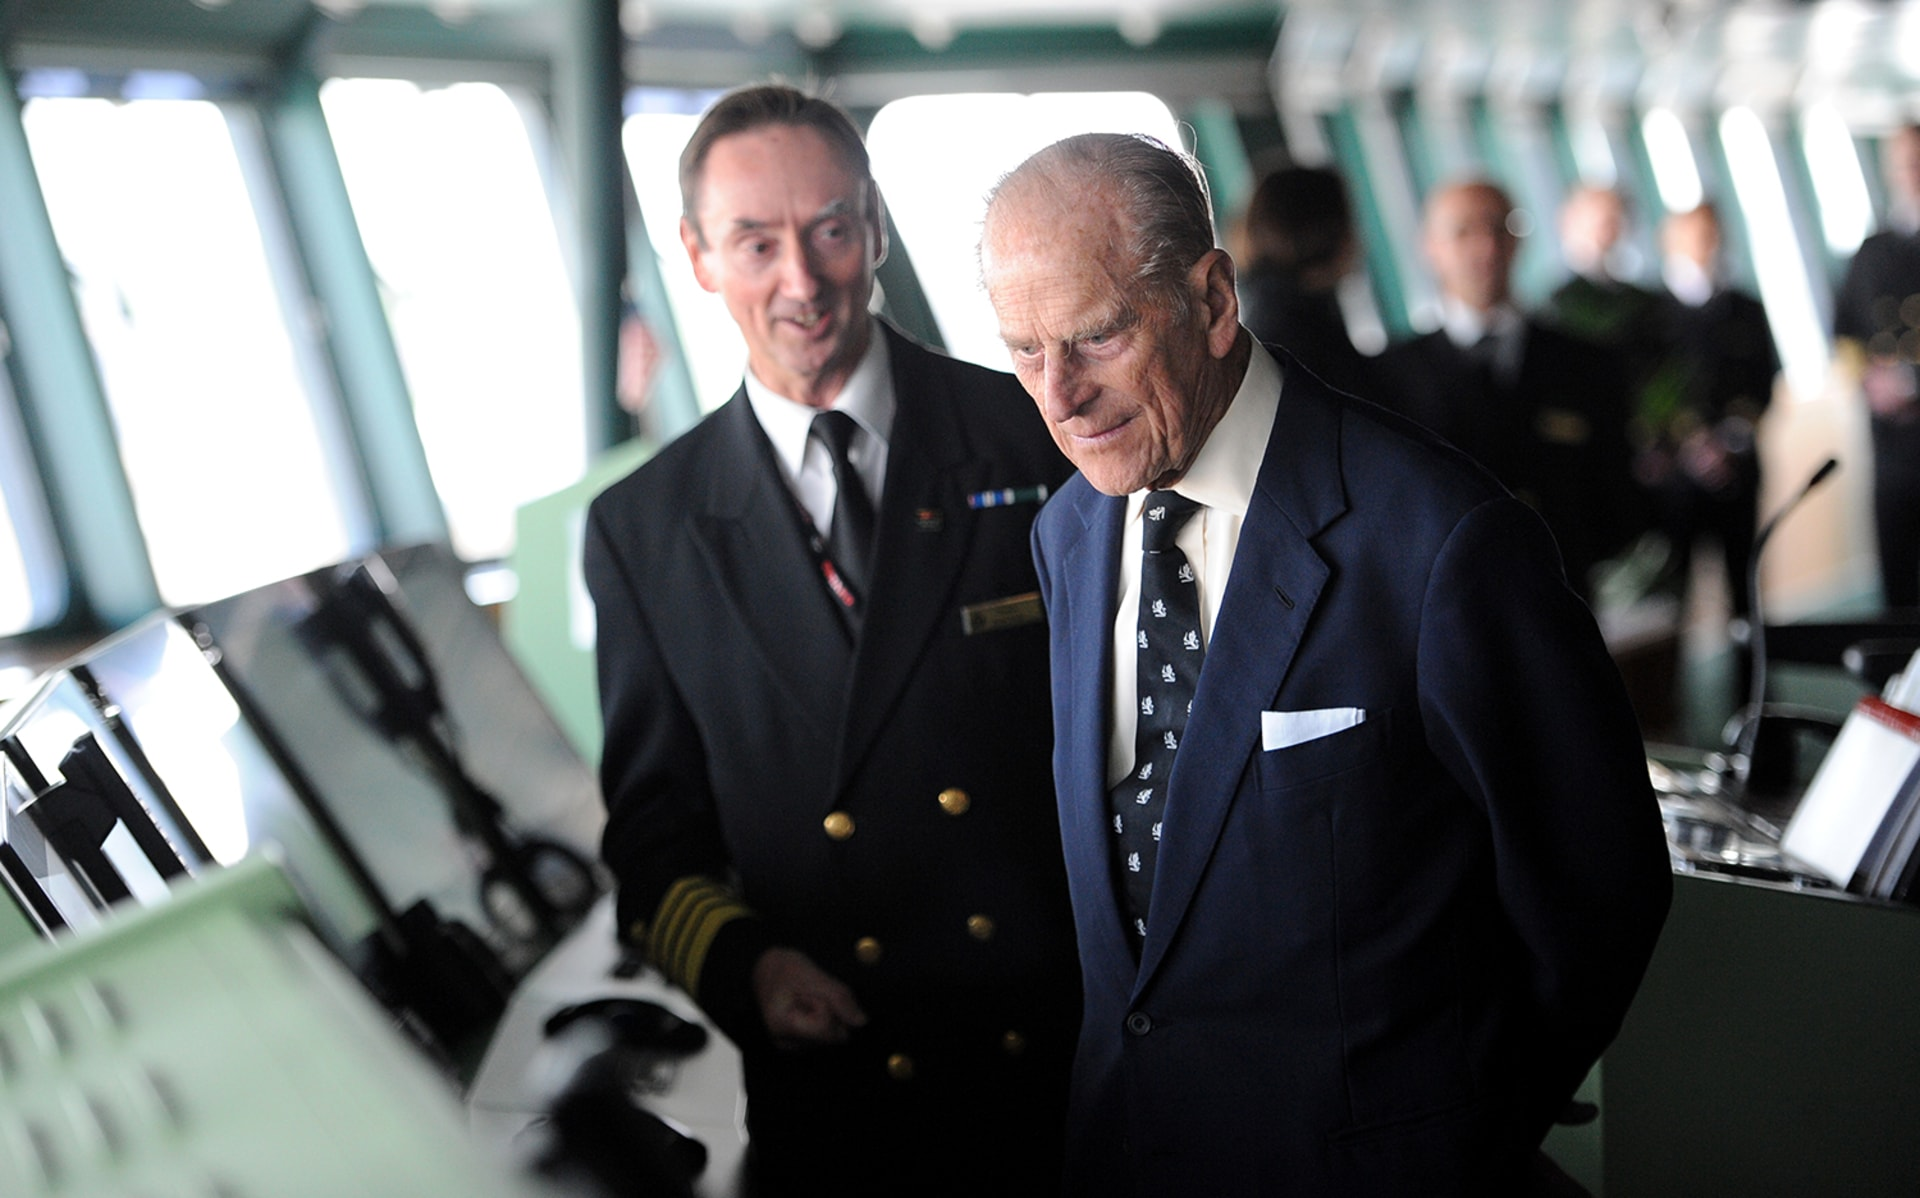 Straight perm edinburgh - The Duke Of Edinburgh Visits Cunard S Queen Mary 2